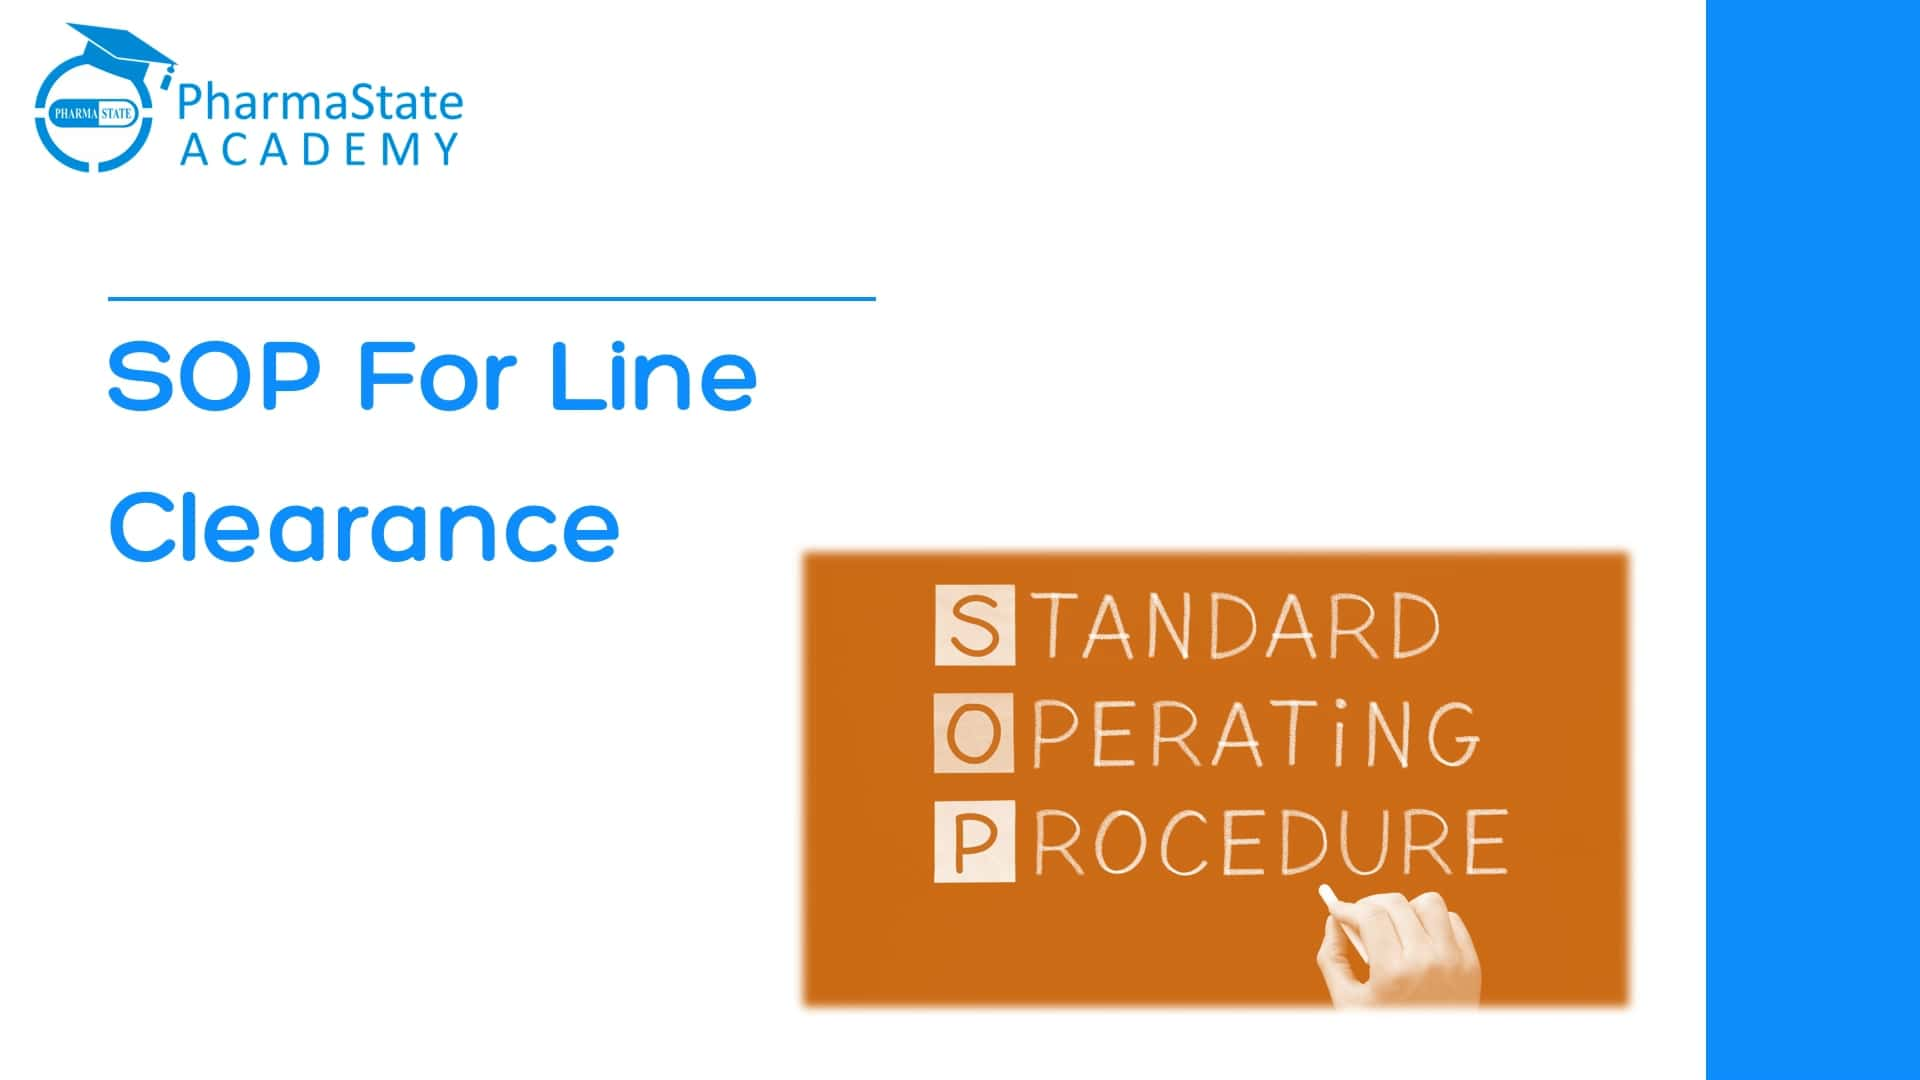 Standard Operating Procedure for Line Clearance